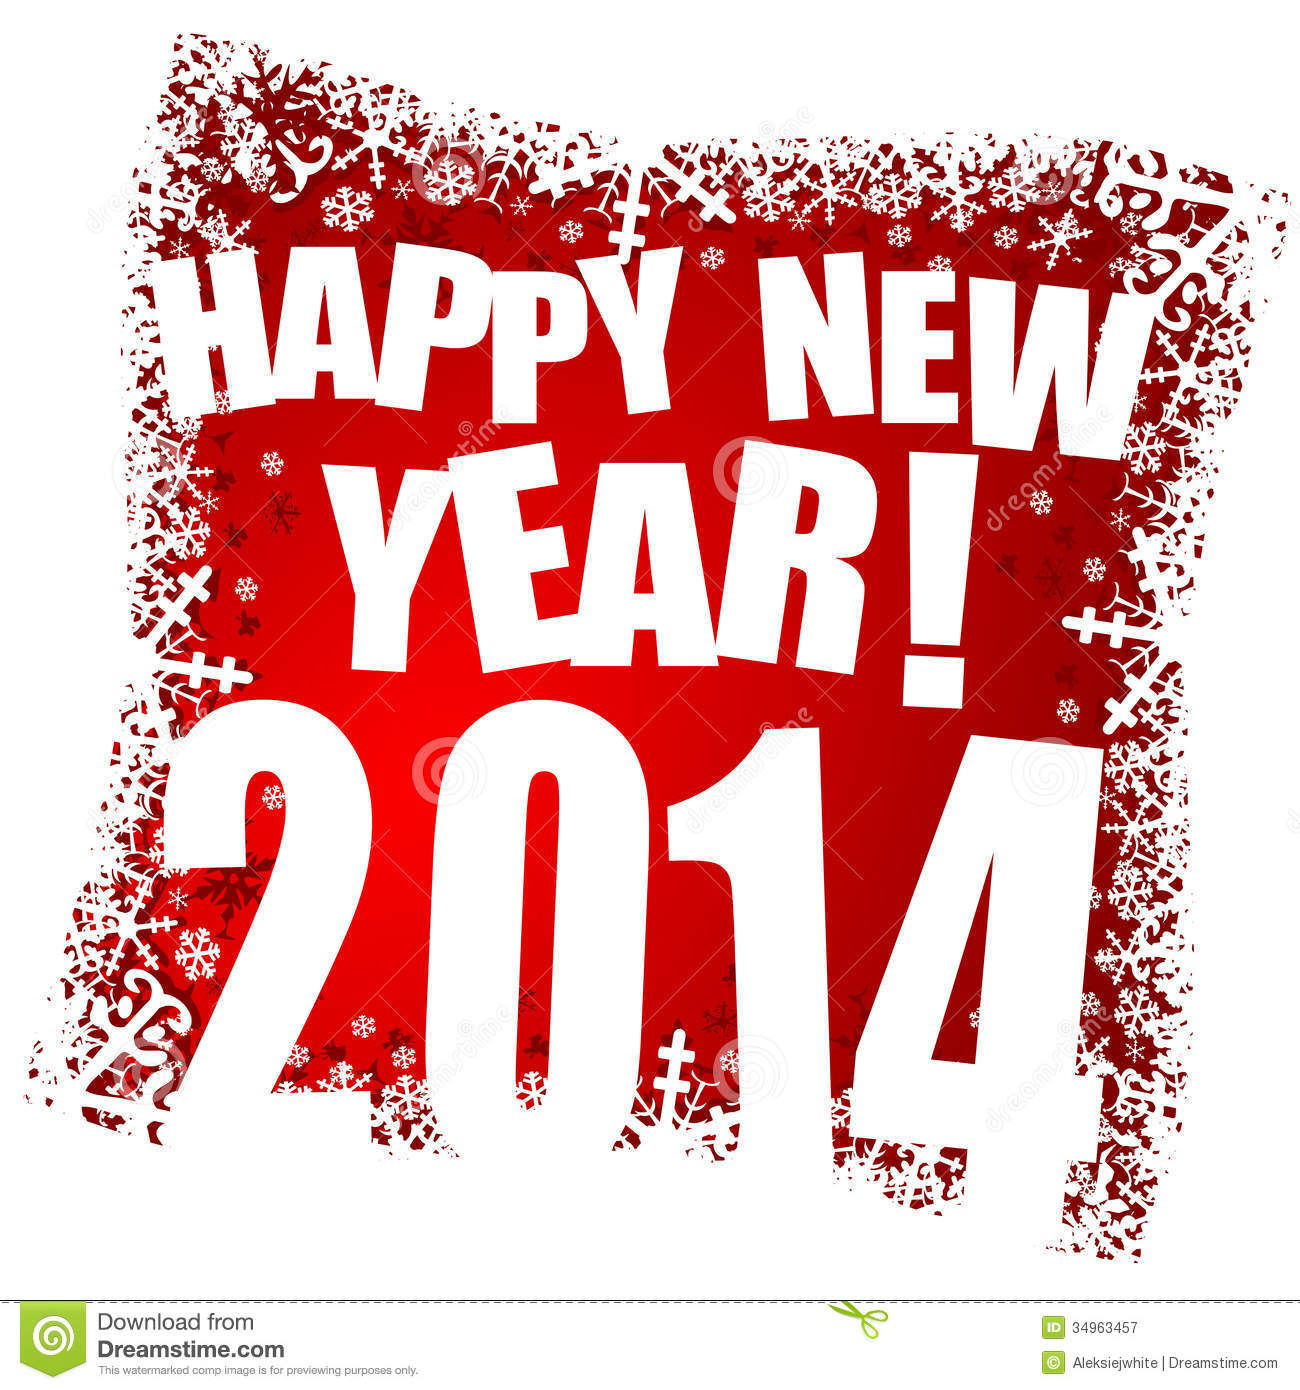 New Year 2014 Stock Photography  Image 34288242